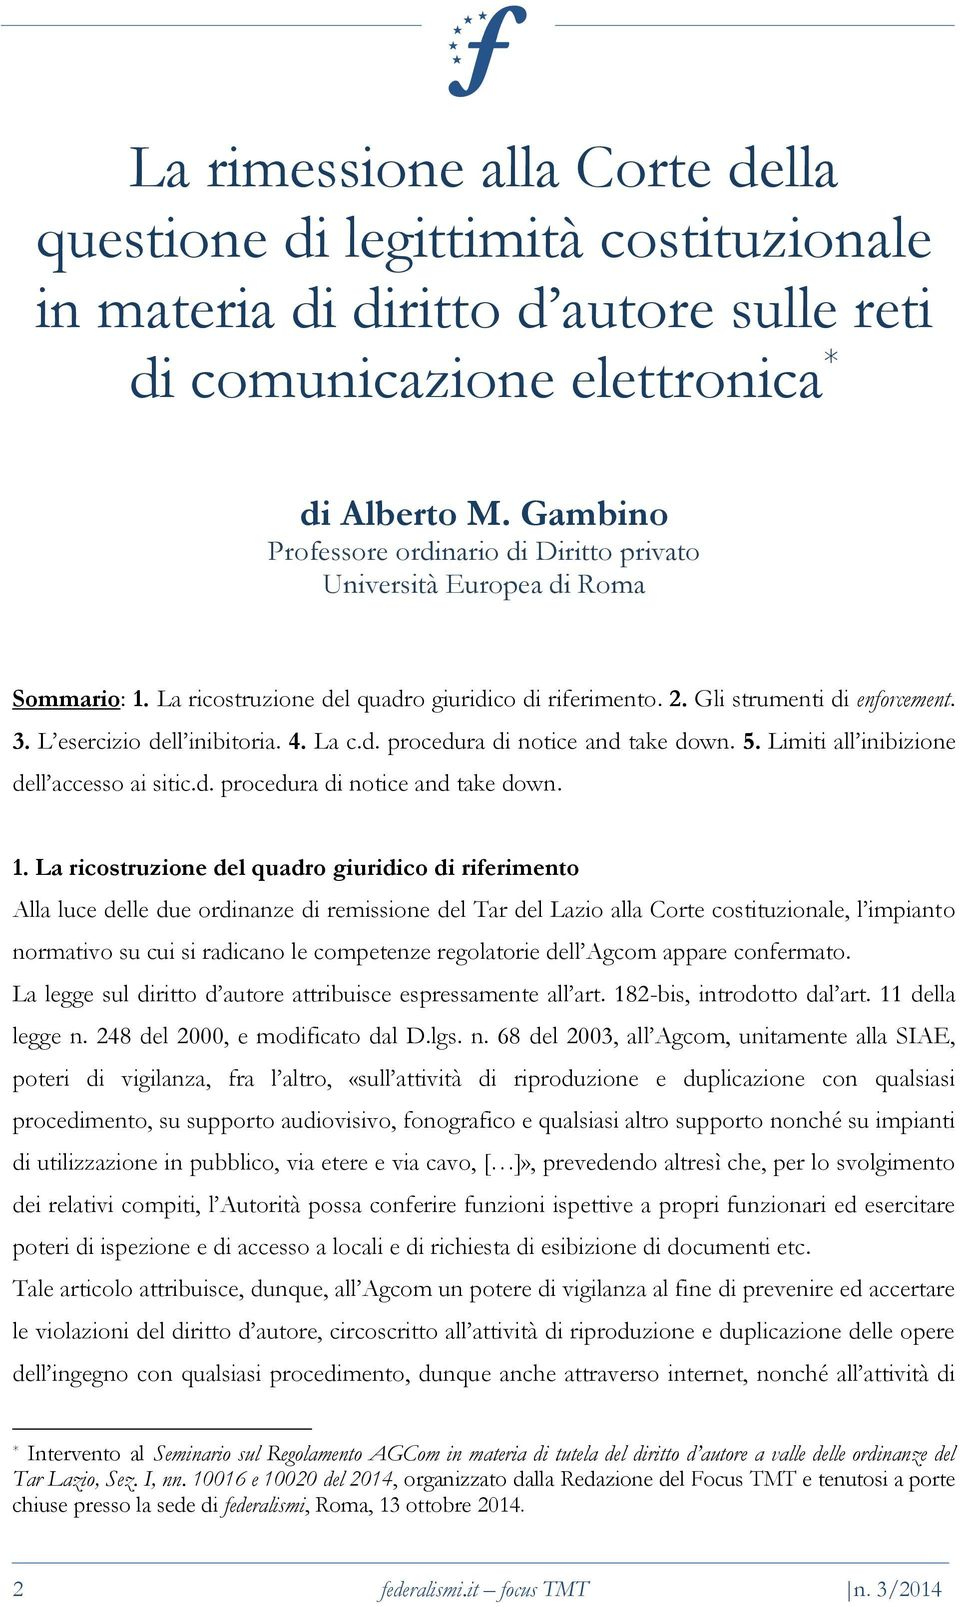 L esercizio dell inibitoria. 4. La c.d. procedura di notice and take down. 5. Limiti all inibizione dell accesso ai sitic.d. procedura di notice and take down. 1.